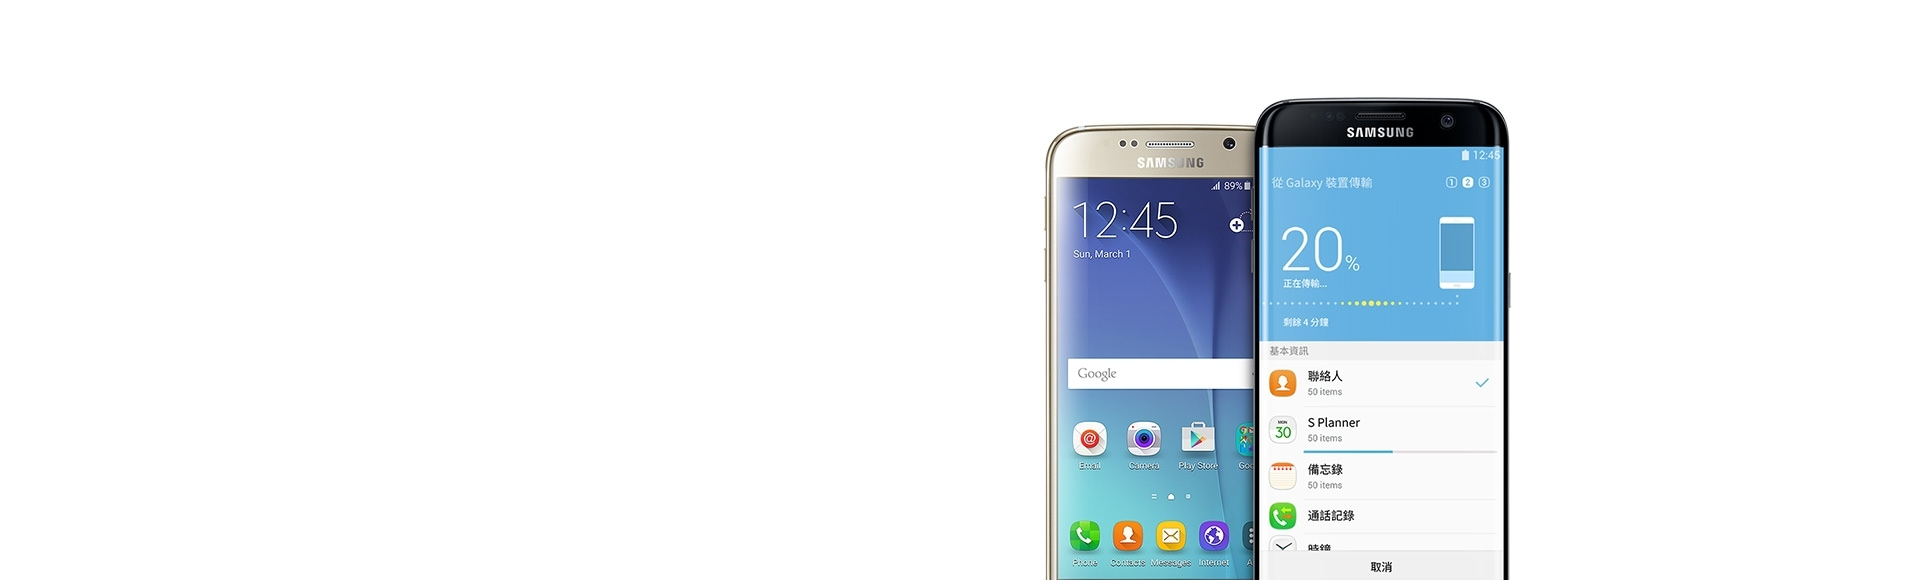 Content from Galaxy Note5 being transferred to Galaxy S7 edge via the Smart switch app